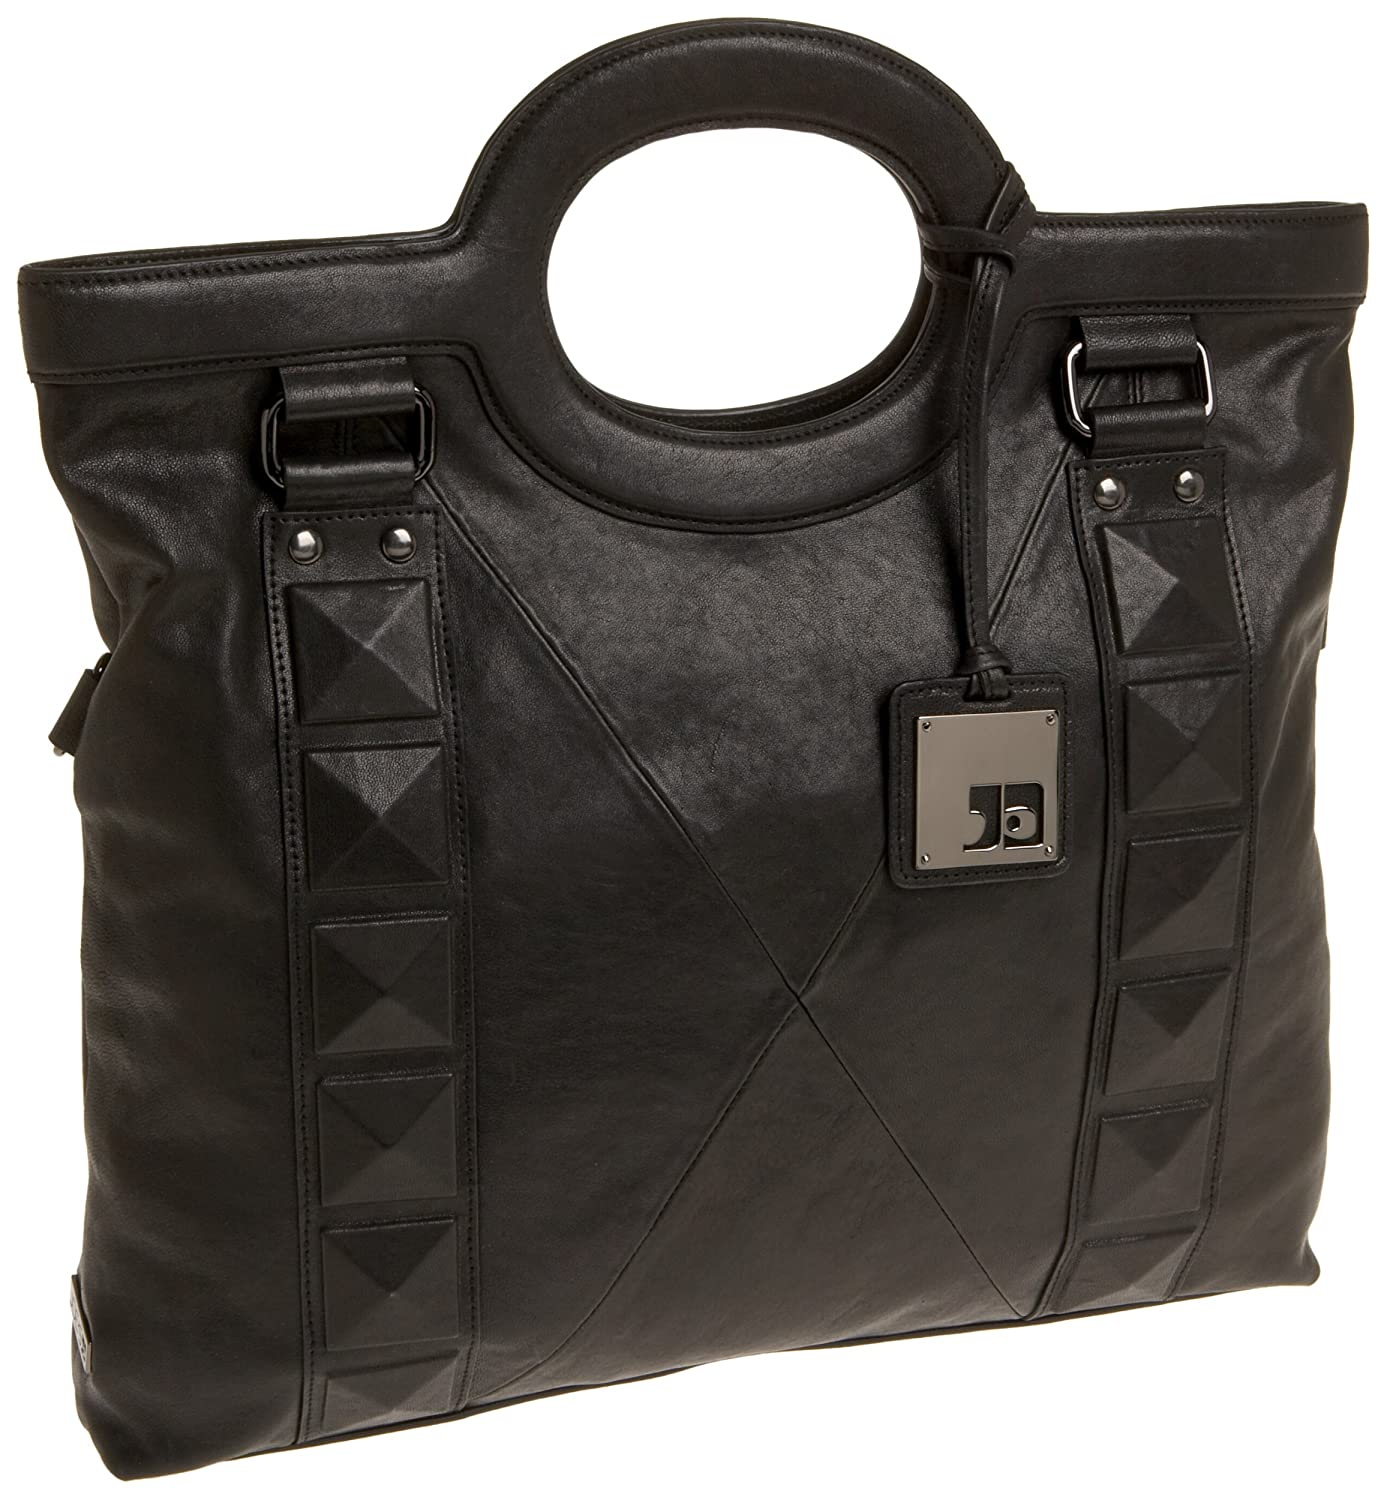 Endless.com: Joe's Jeans Got it Covered Convertible Tote: Categories - Free Overnight Shipping & Return Shipping